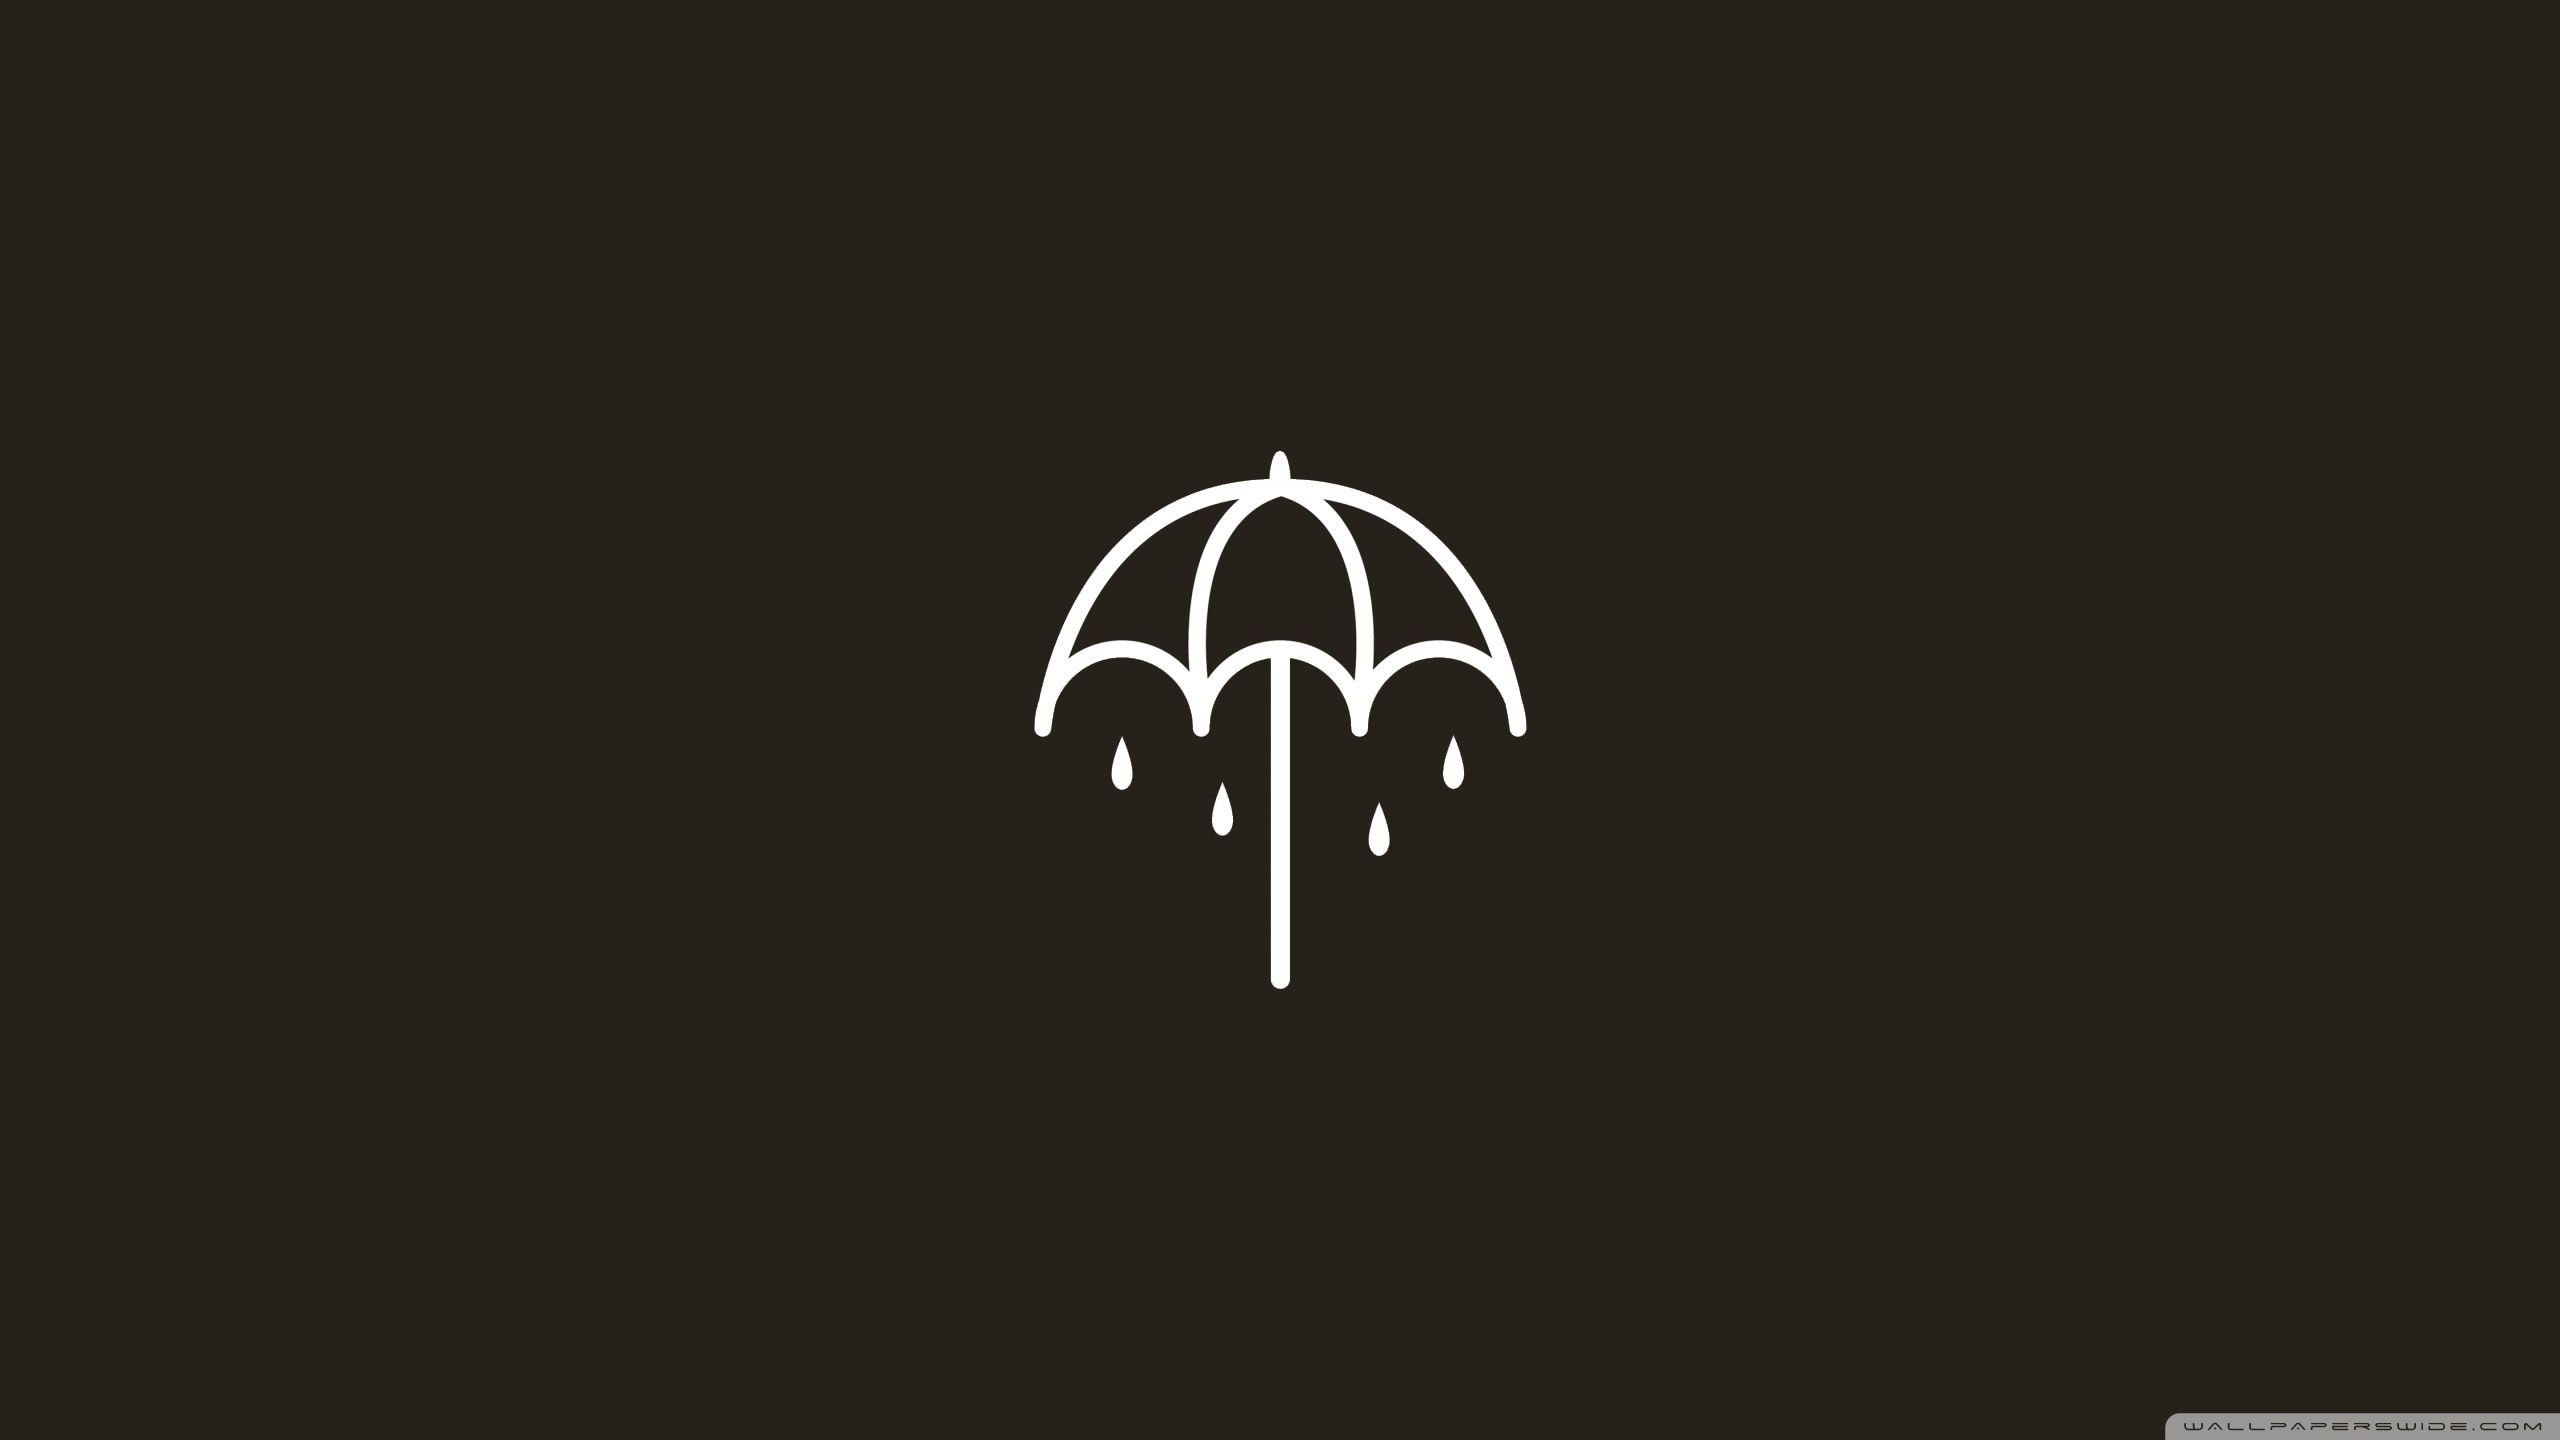 Bring Me The Horizon Wallpapers Top Free Bring Me The Horizon